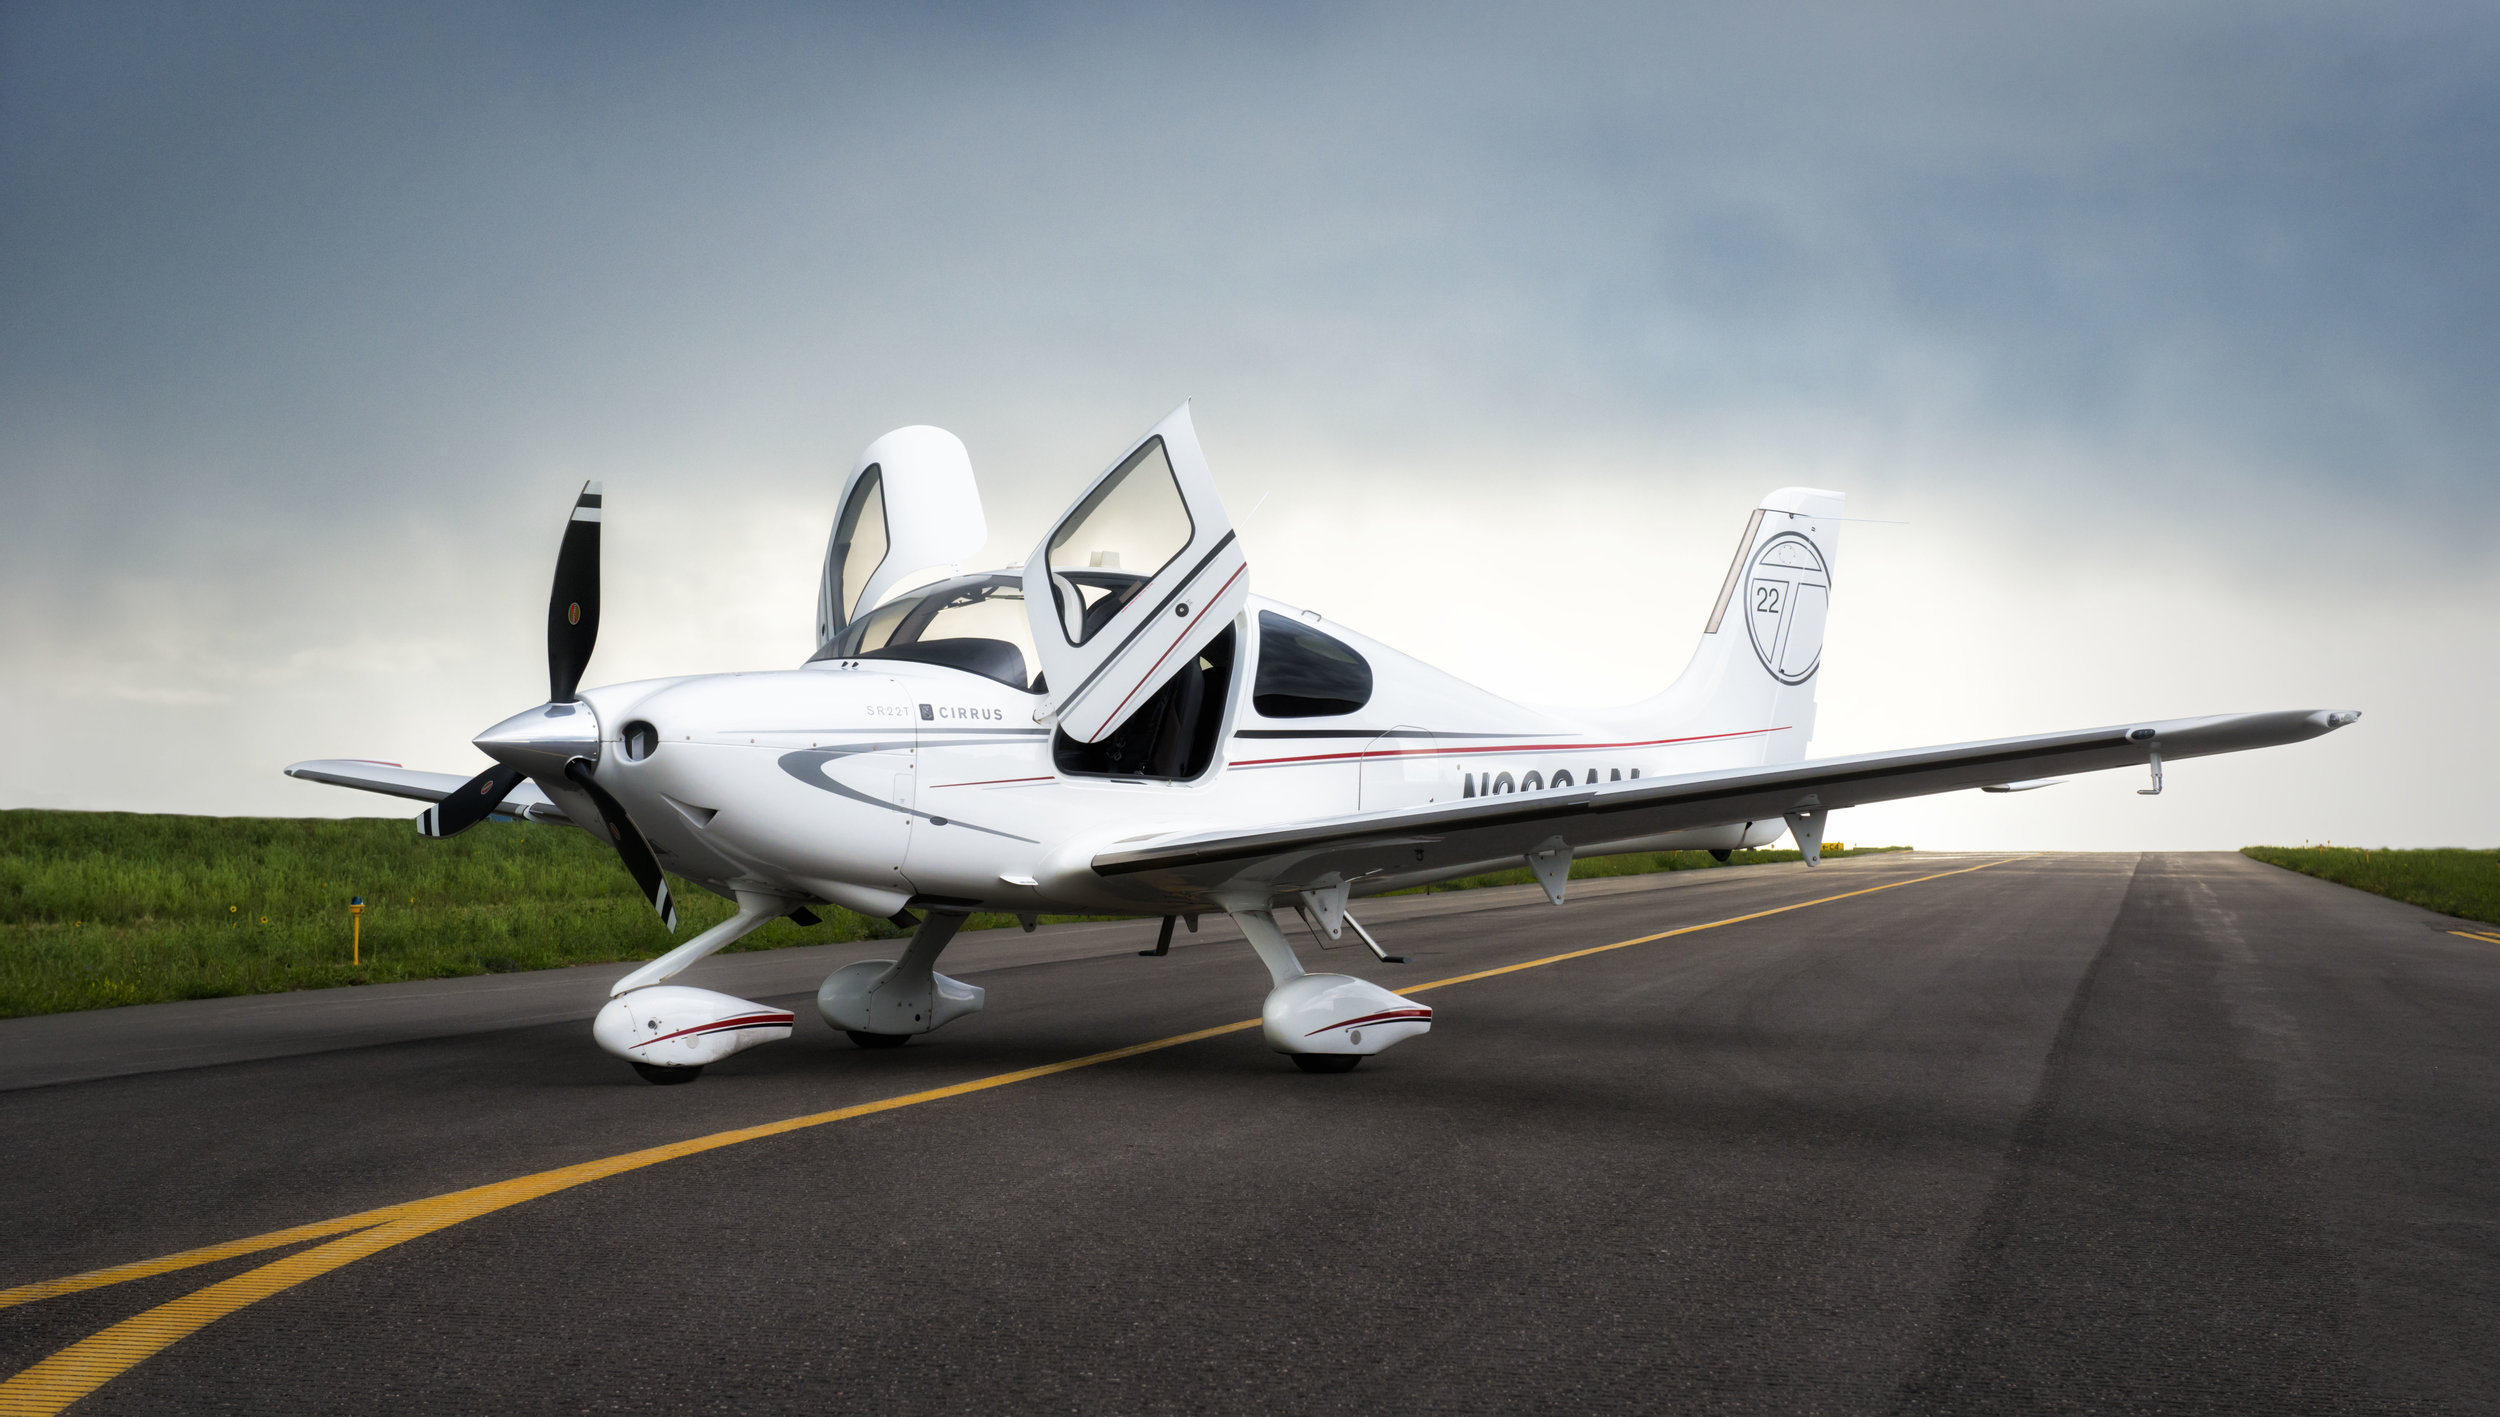 N333AN | 2010 Cirrus SR22 Turbo G3 | $360/hr dry